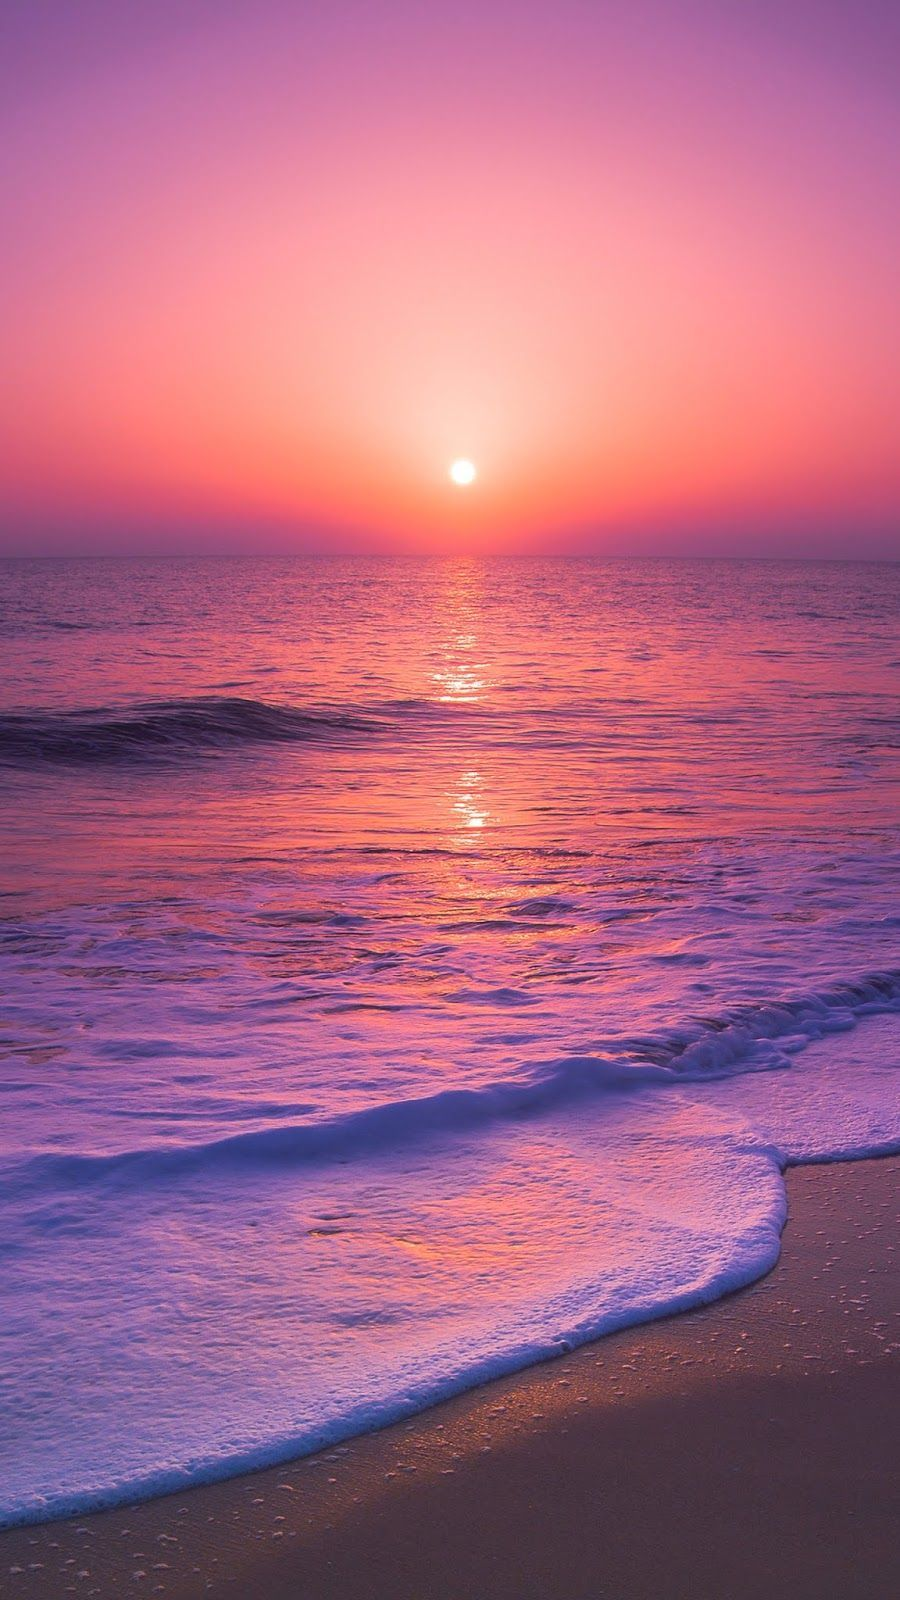 Background Wallpaper Followme Android Iphone Sunset Beachsunset Beach Wallpaper Sunset Beac Sunset Wallpaper Beach Sunset Wallpaper Beautiful Wallpapers